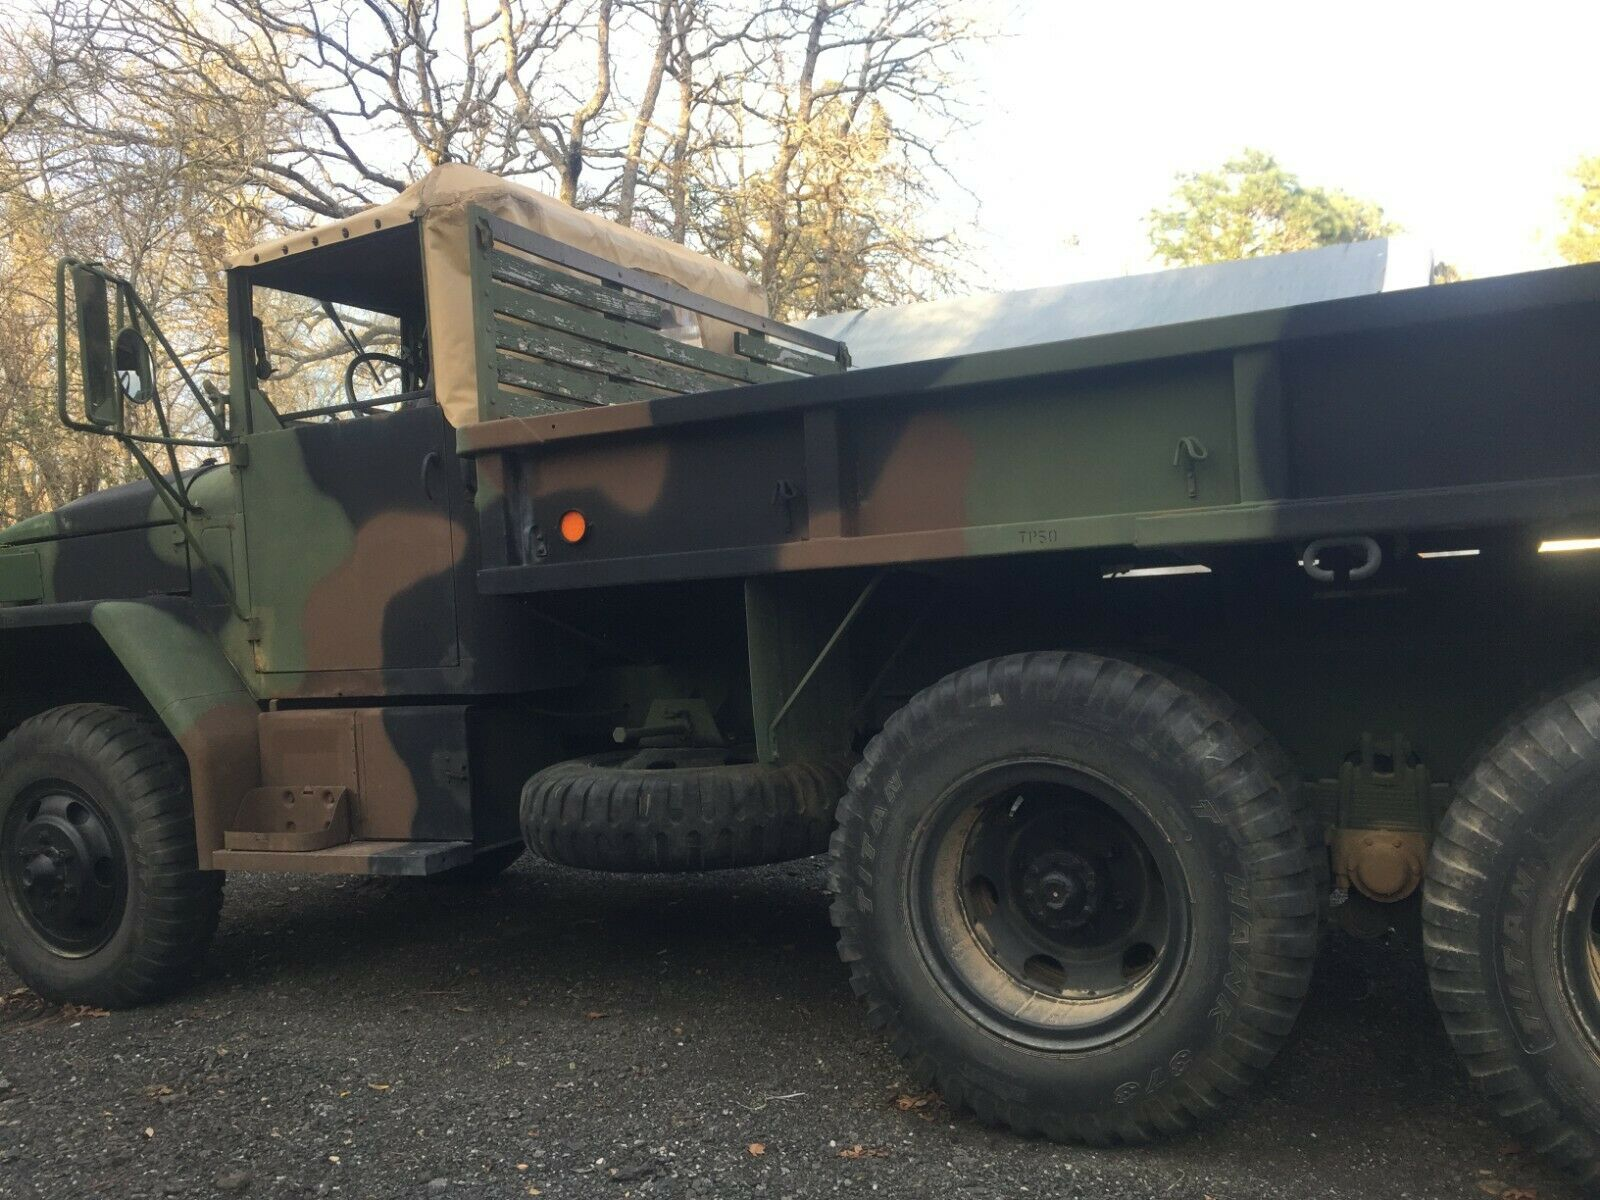 super clean low miles 1979 AM General M35a2 Deuce and a half military